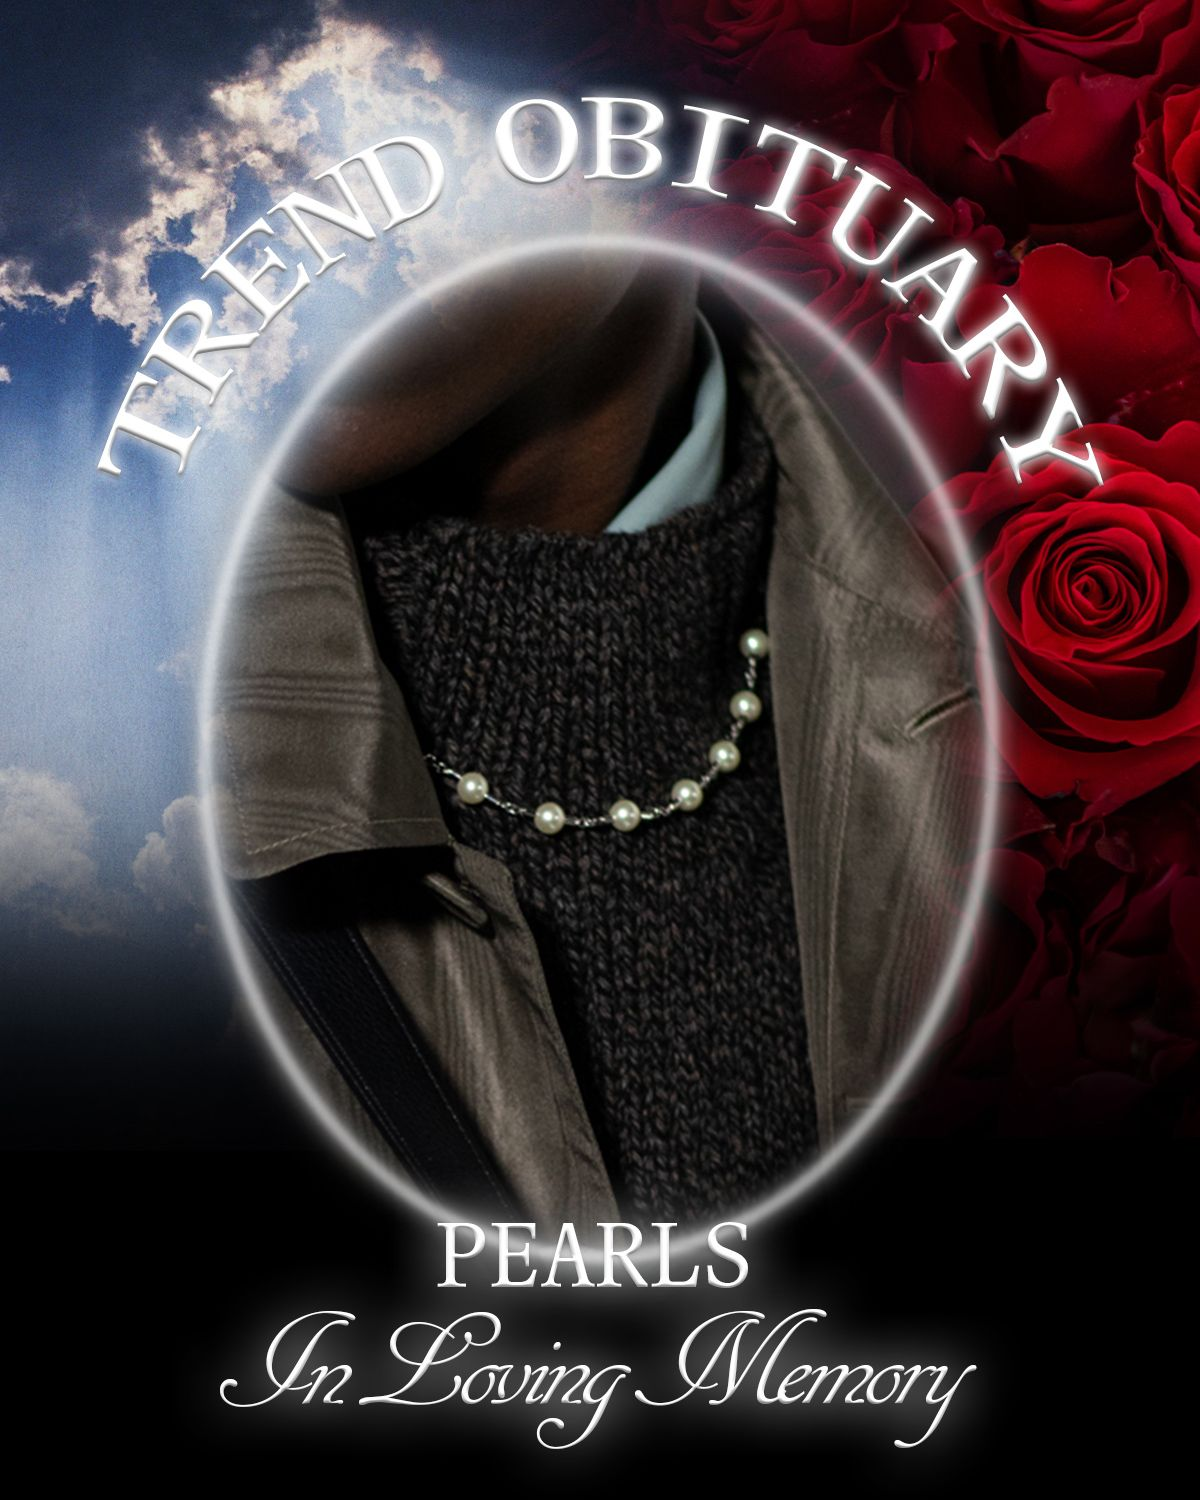 Men of the World, It's Time to Un-Clutch Your Pearls